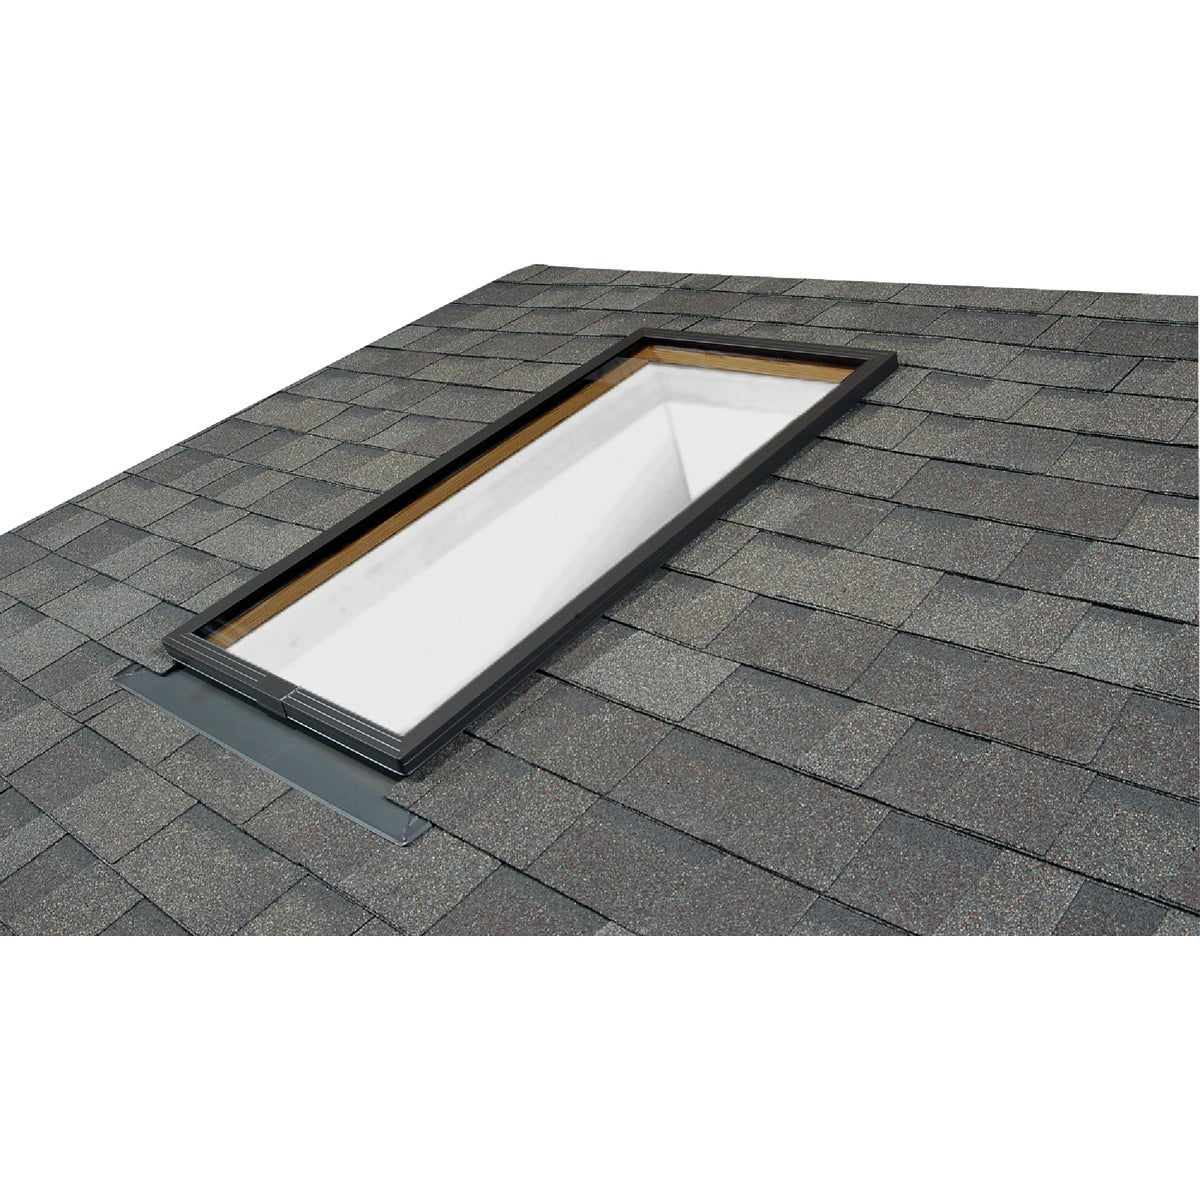 2X4 BRZ LOW-E SKYLIGHT - FGC2549HTB by Sun Tek Manuf Inc